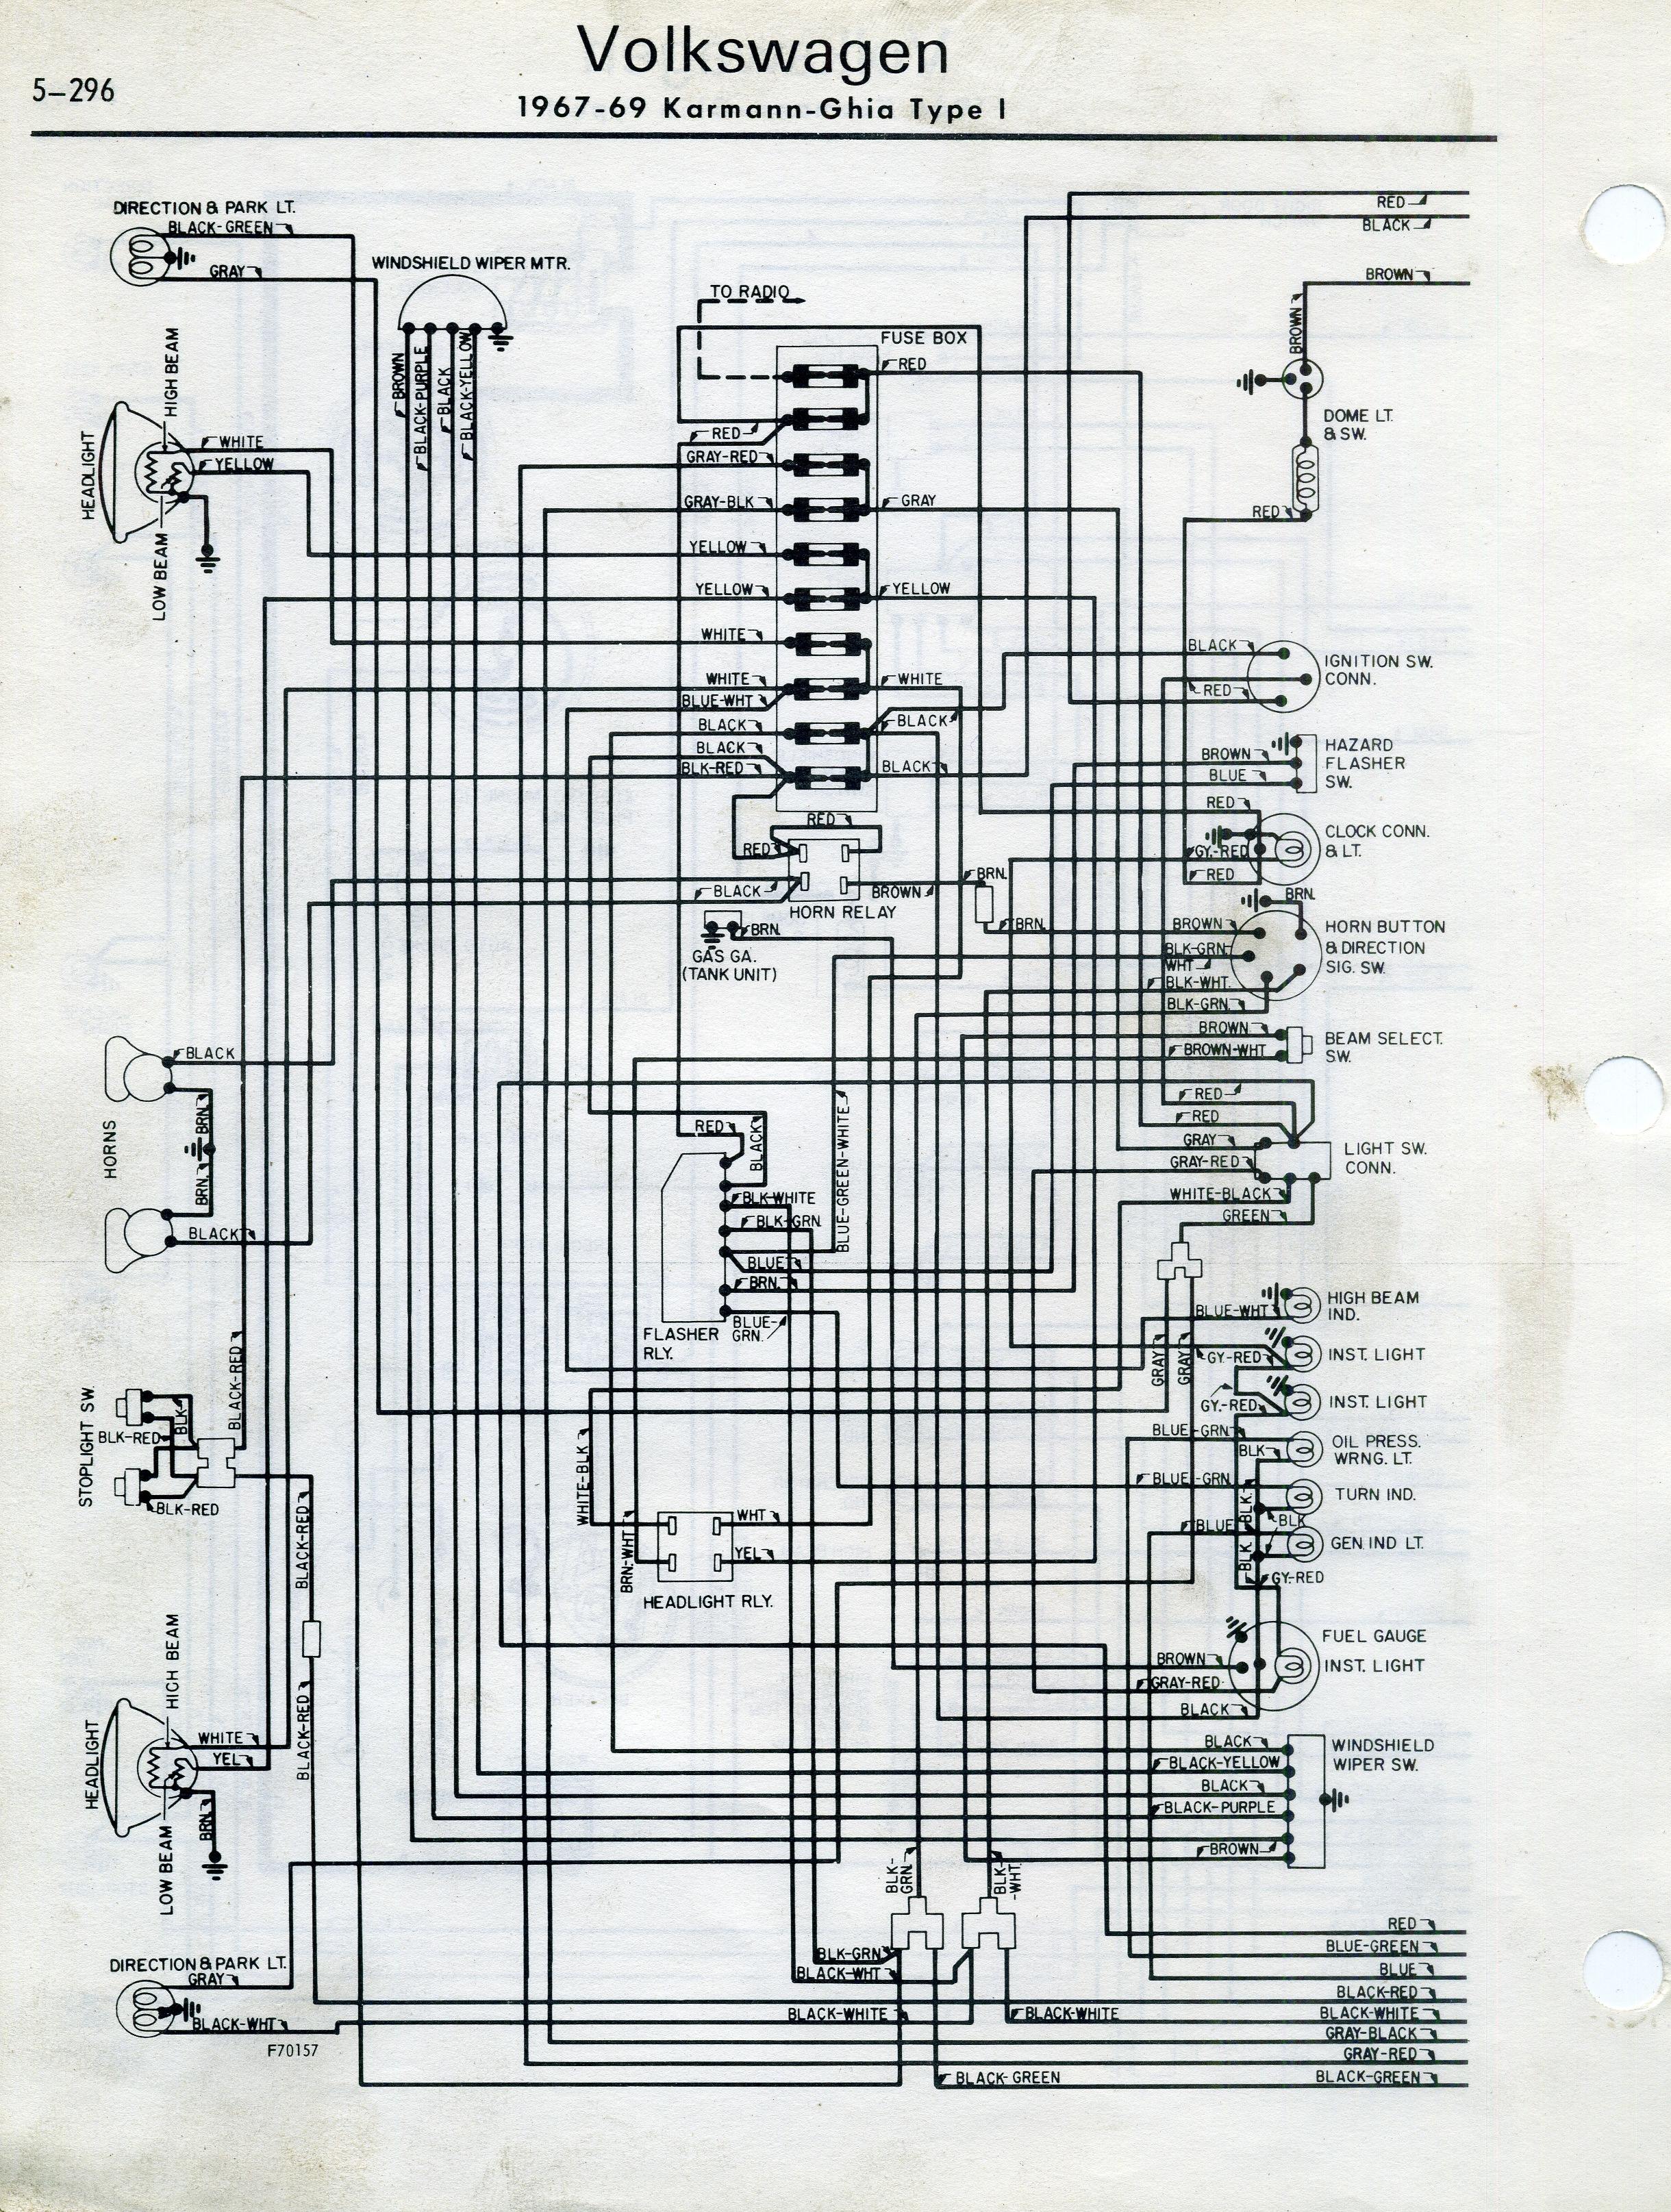 1973 vw karmann ghia wiring schematic 1967 vw karmann ghia wiring diagram thesamba.com :: karmann ghia wiring diagrams